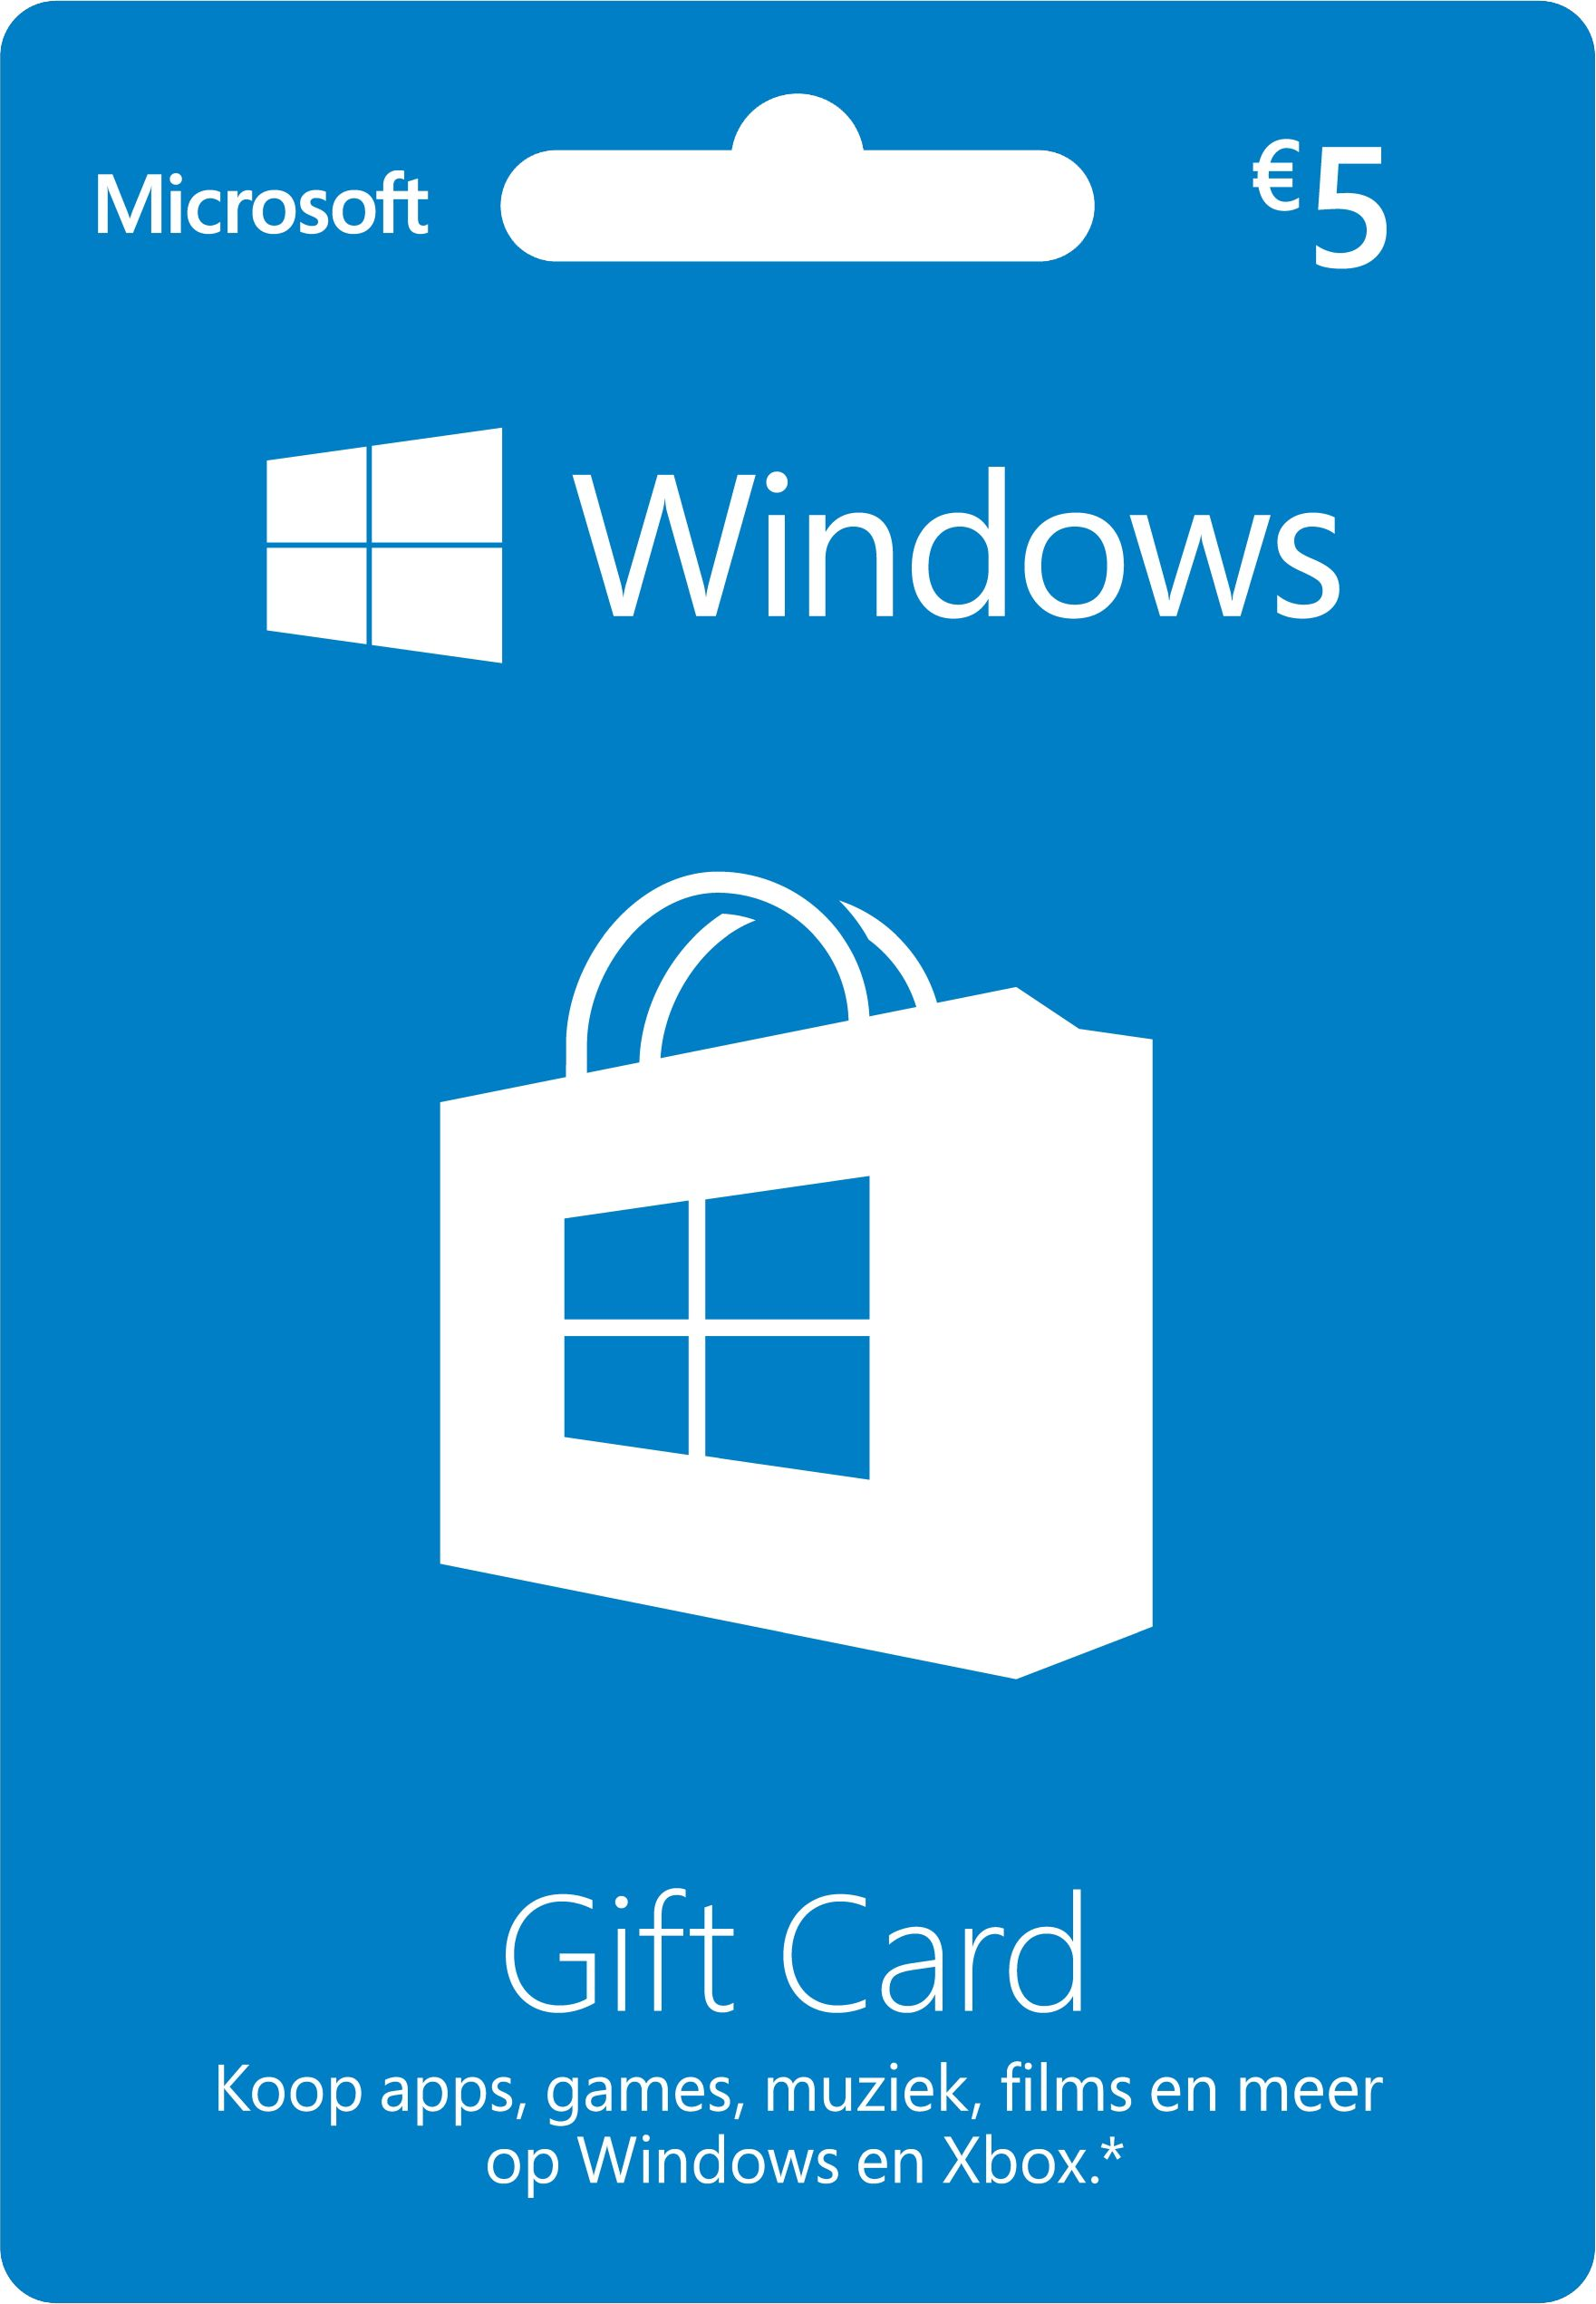 Windows Gift Card 5 euro